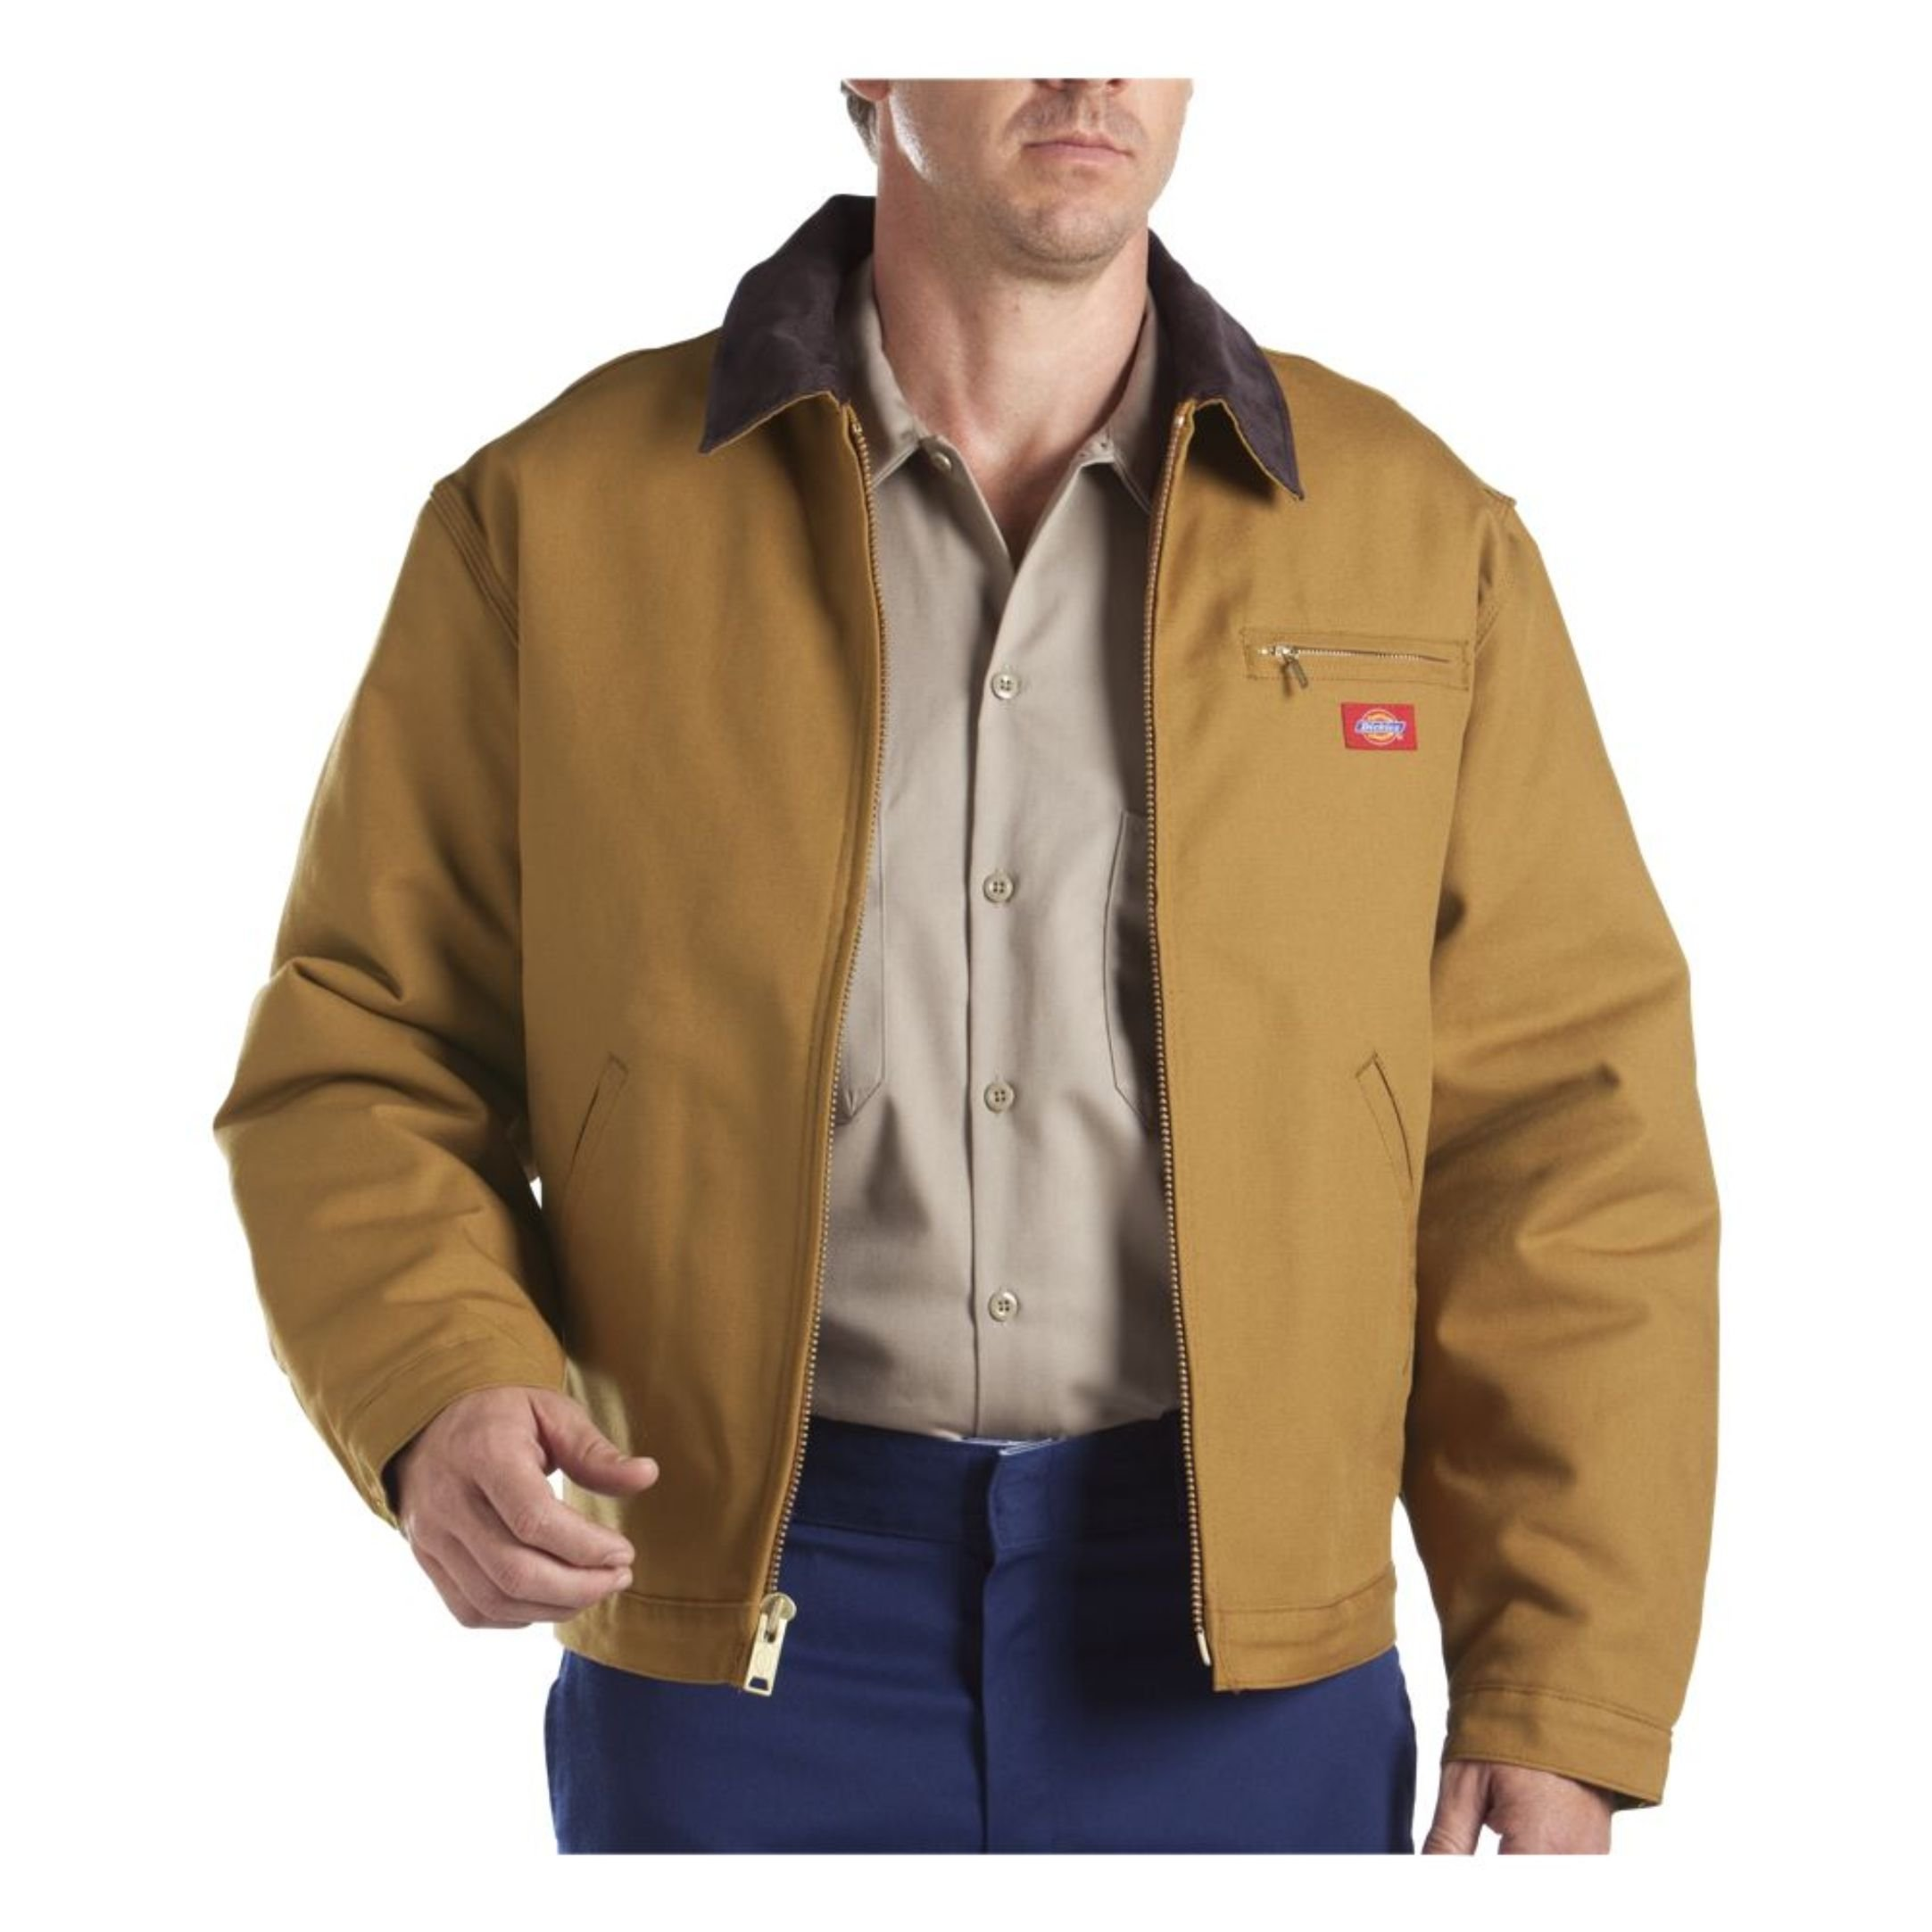 Dickies Men's Rigid Duck Blanket Lined Jacket, Brown Duck, Extra Large-Regular by Dickies